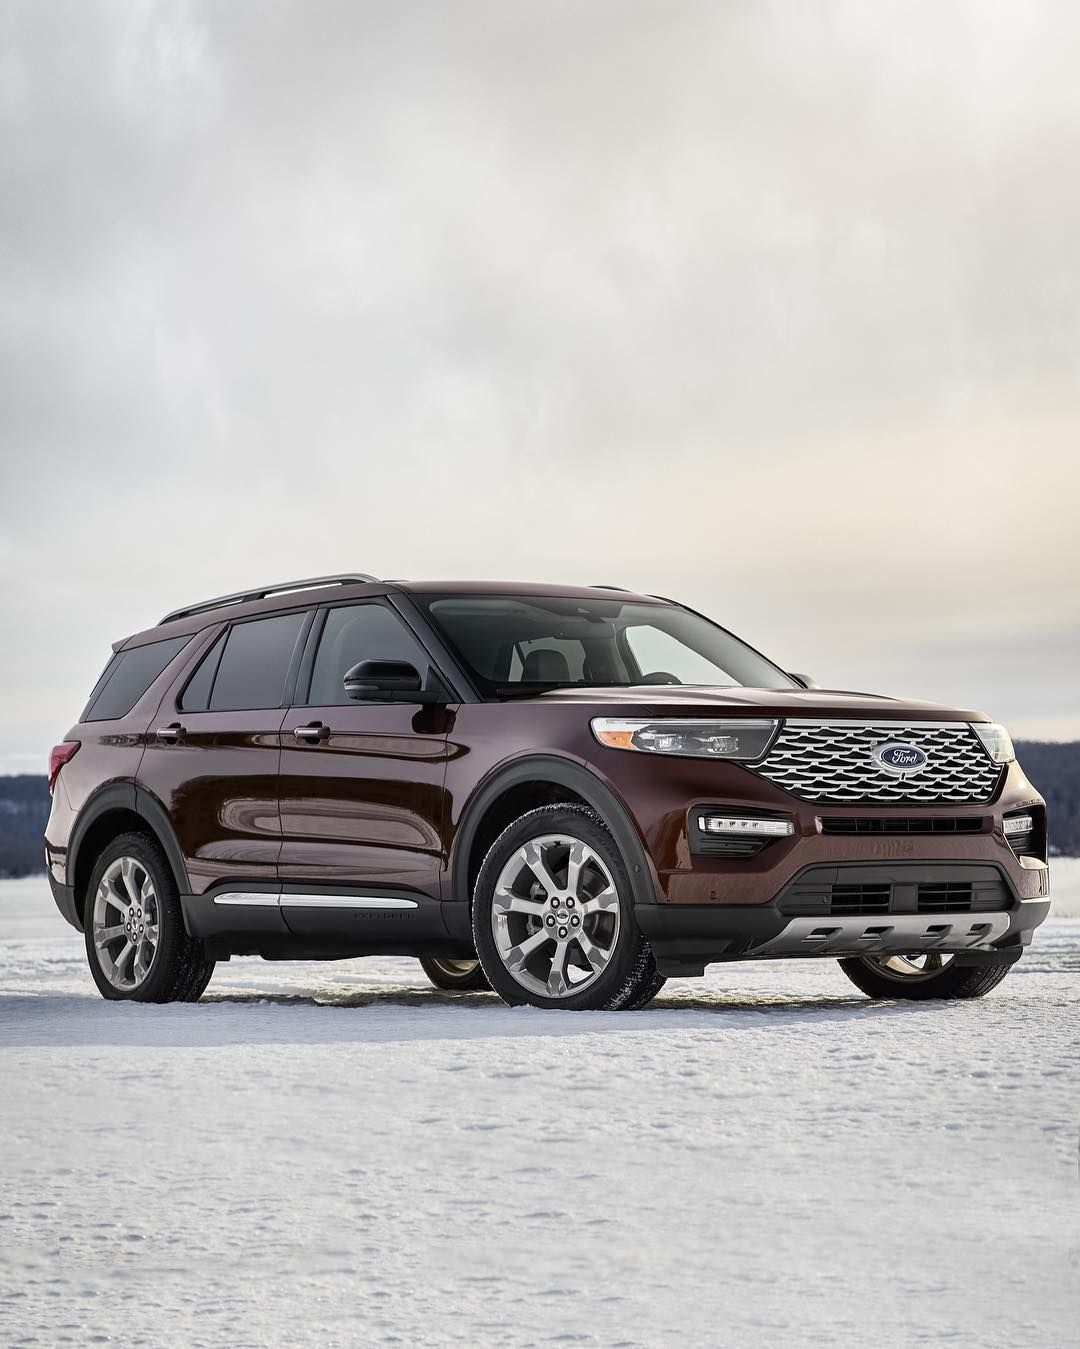 The 2020 Ford Explorer Is Here And The Three Row Family Utility Vehicle Gets The Complete Overhaul While Adding A Hyb With Images 2020 Ford Explorer Ford Explorer Ford Suv